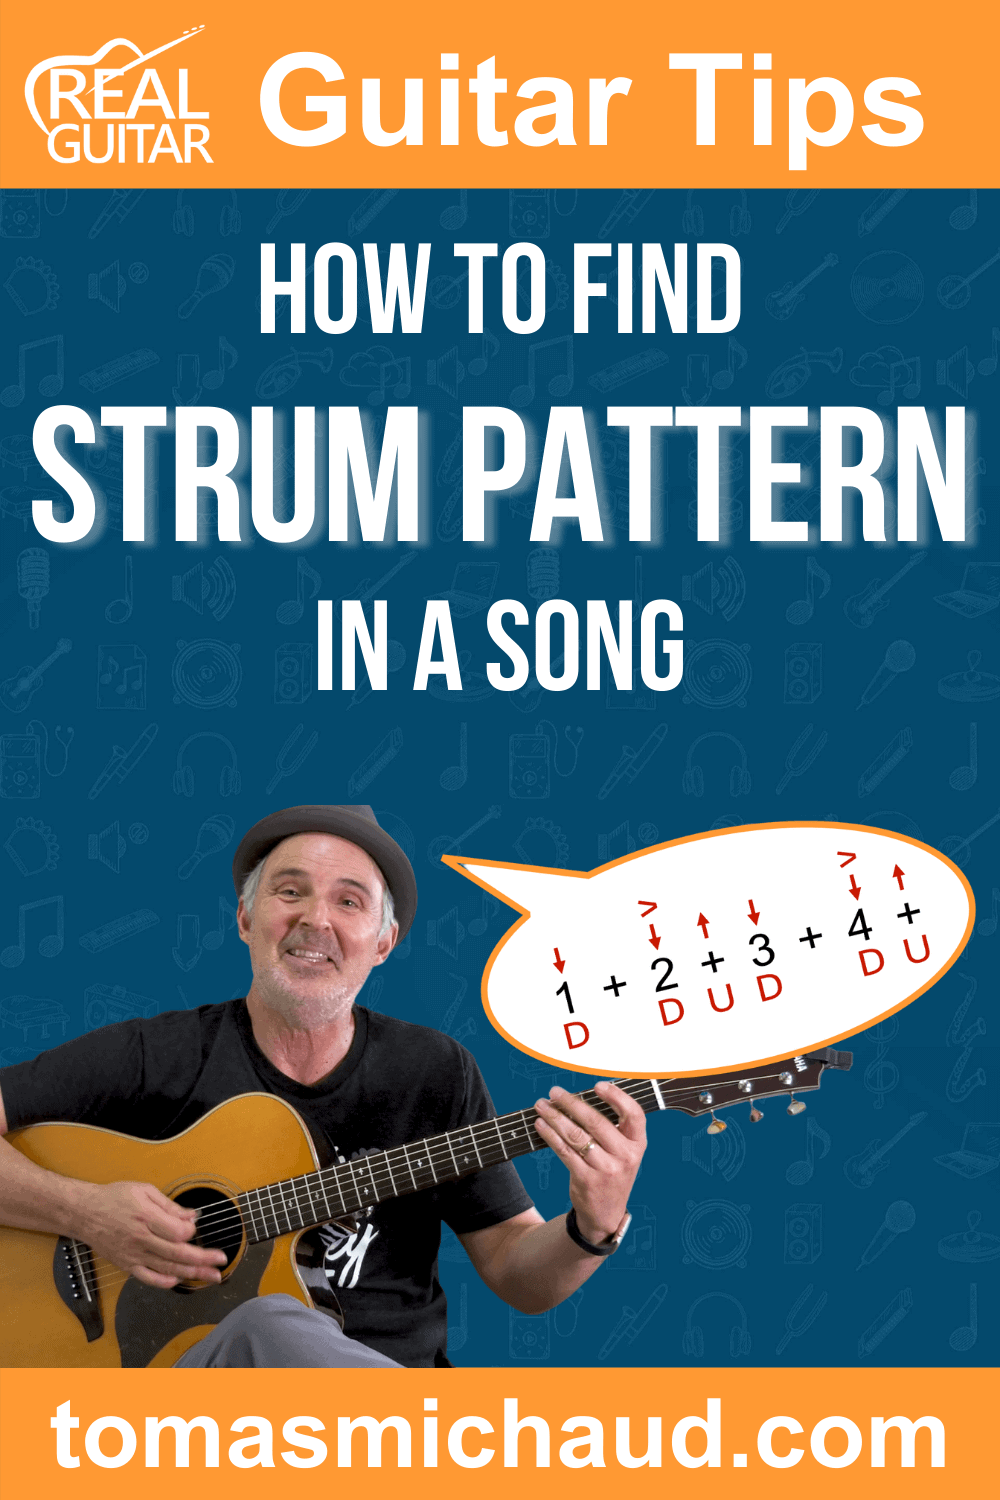 How To Find Strum Pattern In A Song